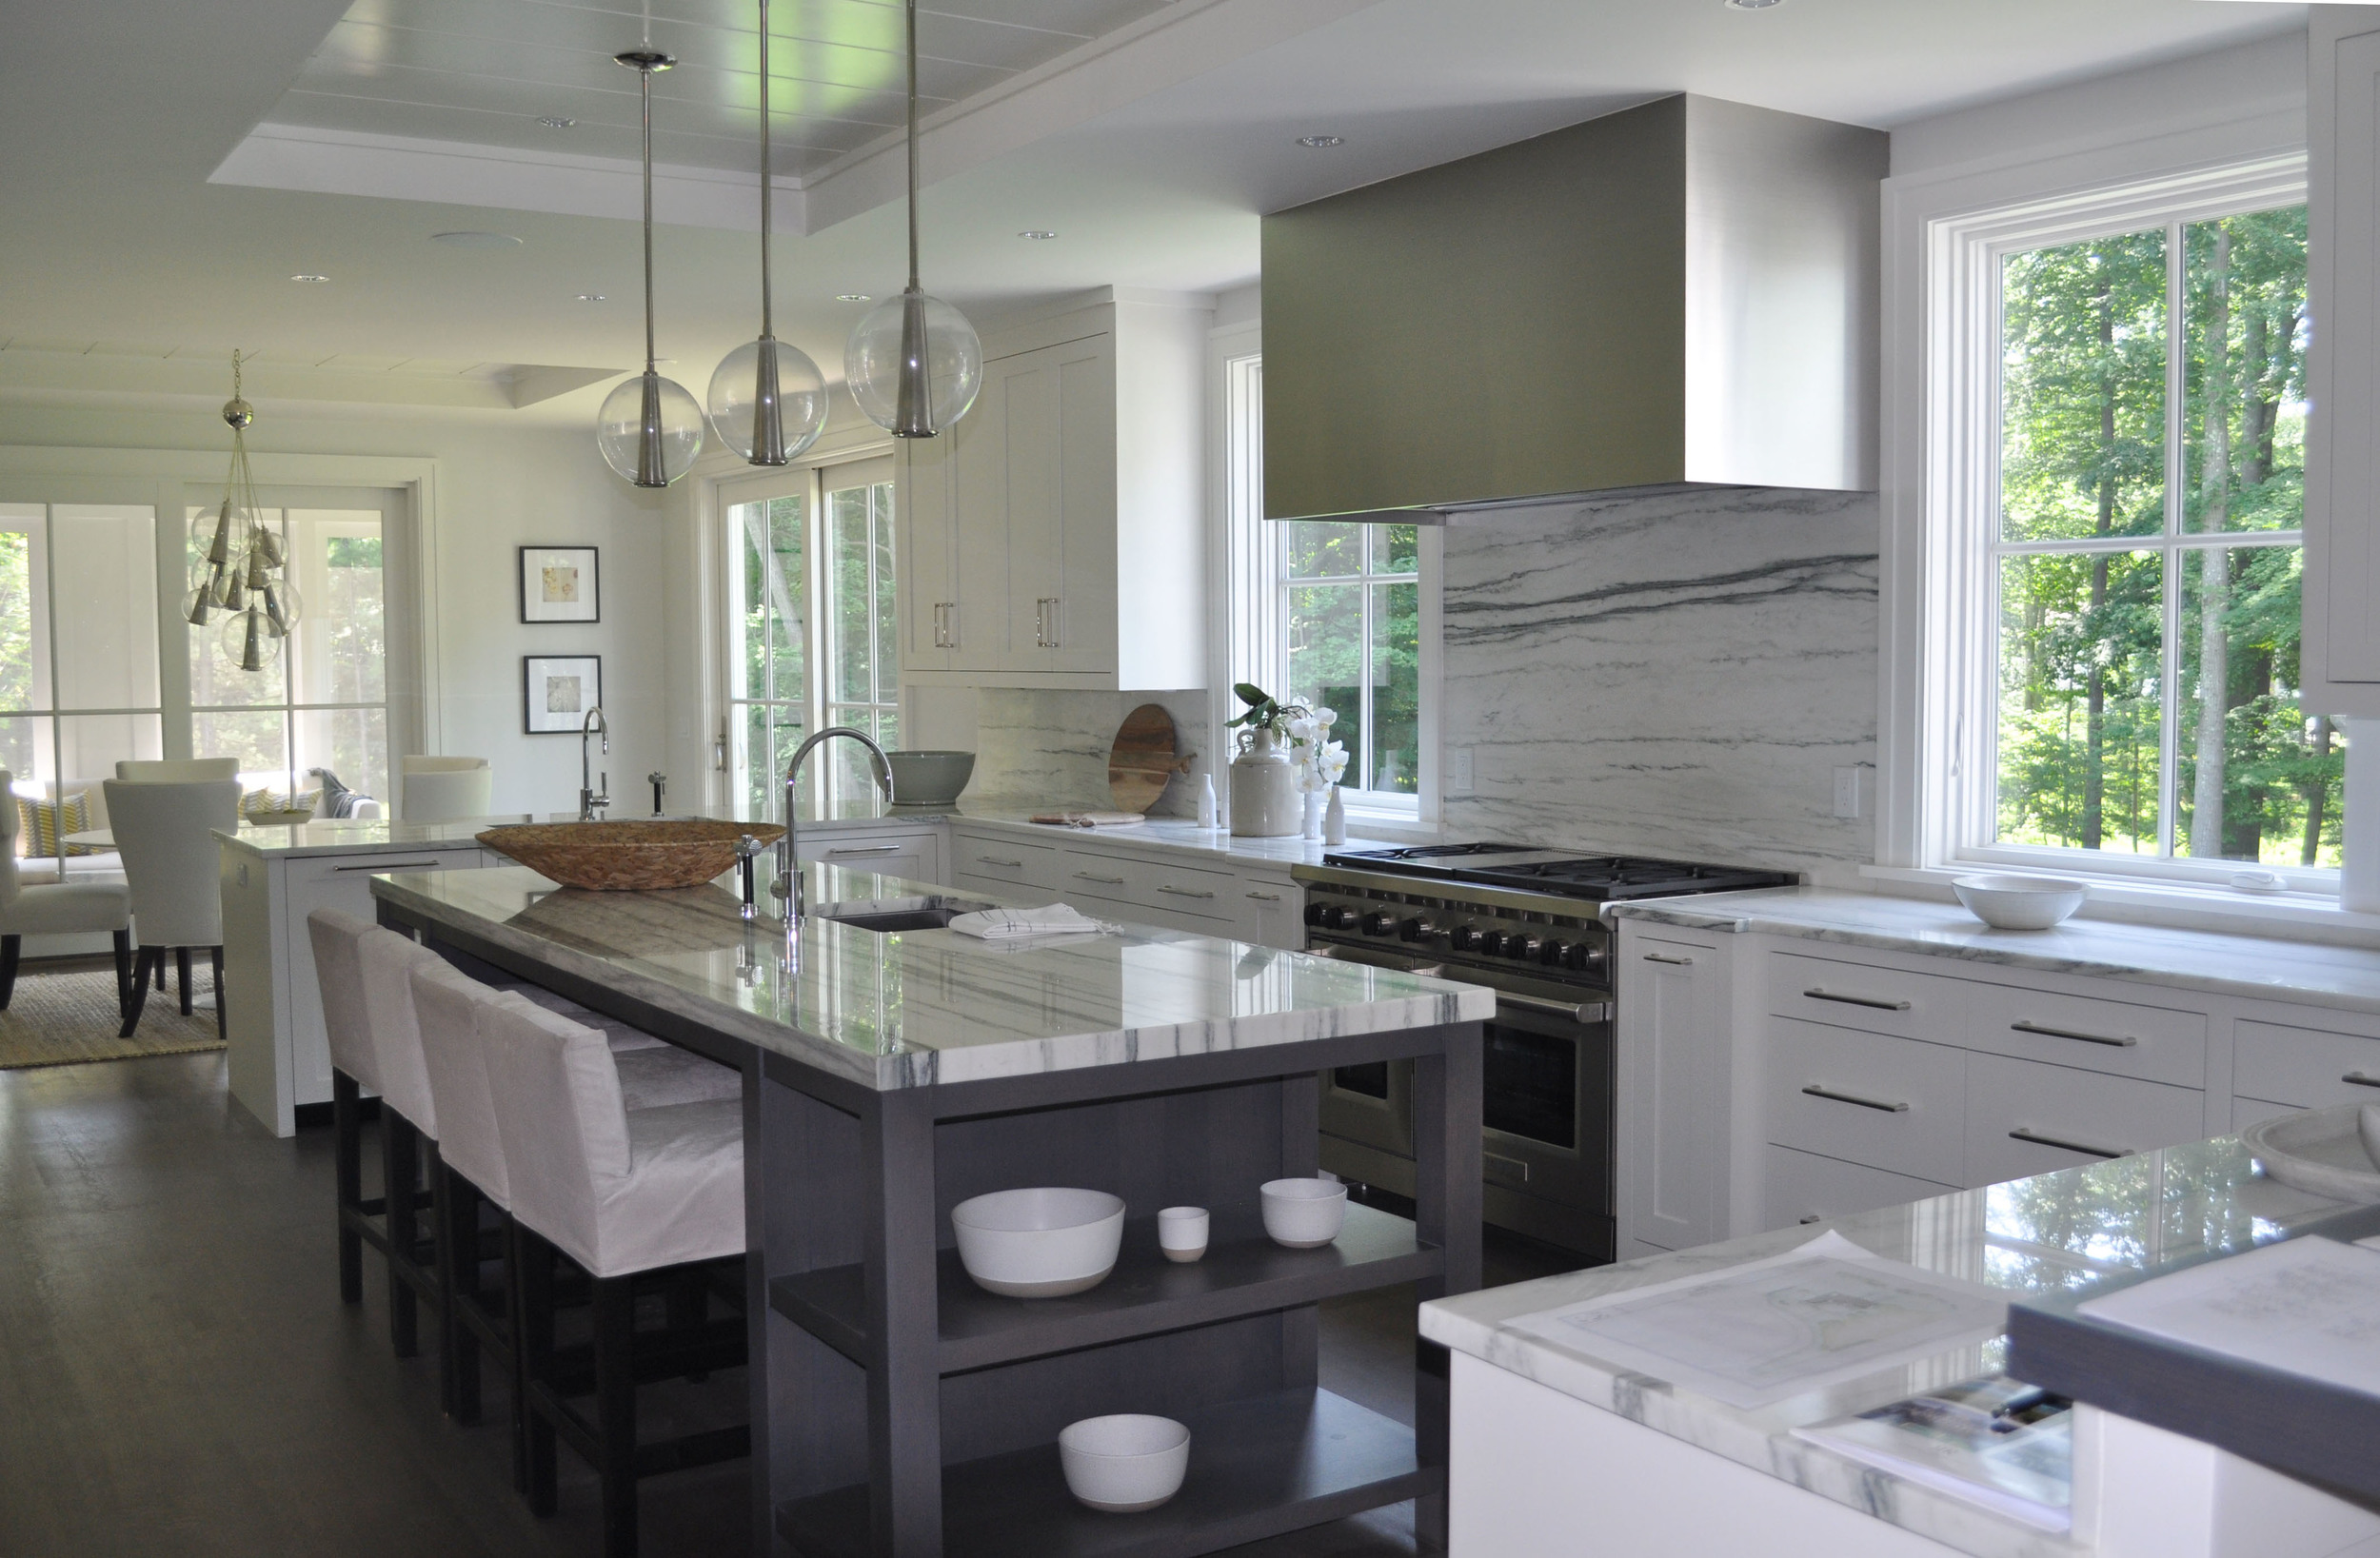 Interior Millwork and finishes for Milton Developement